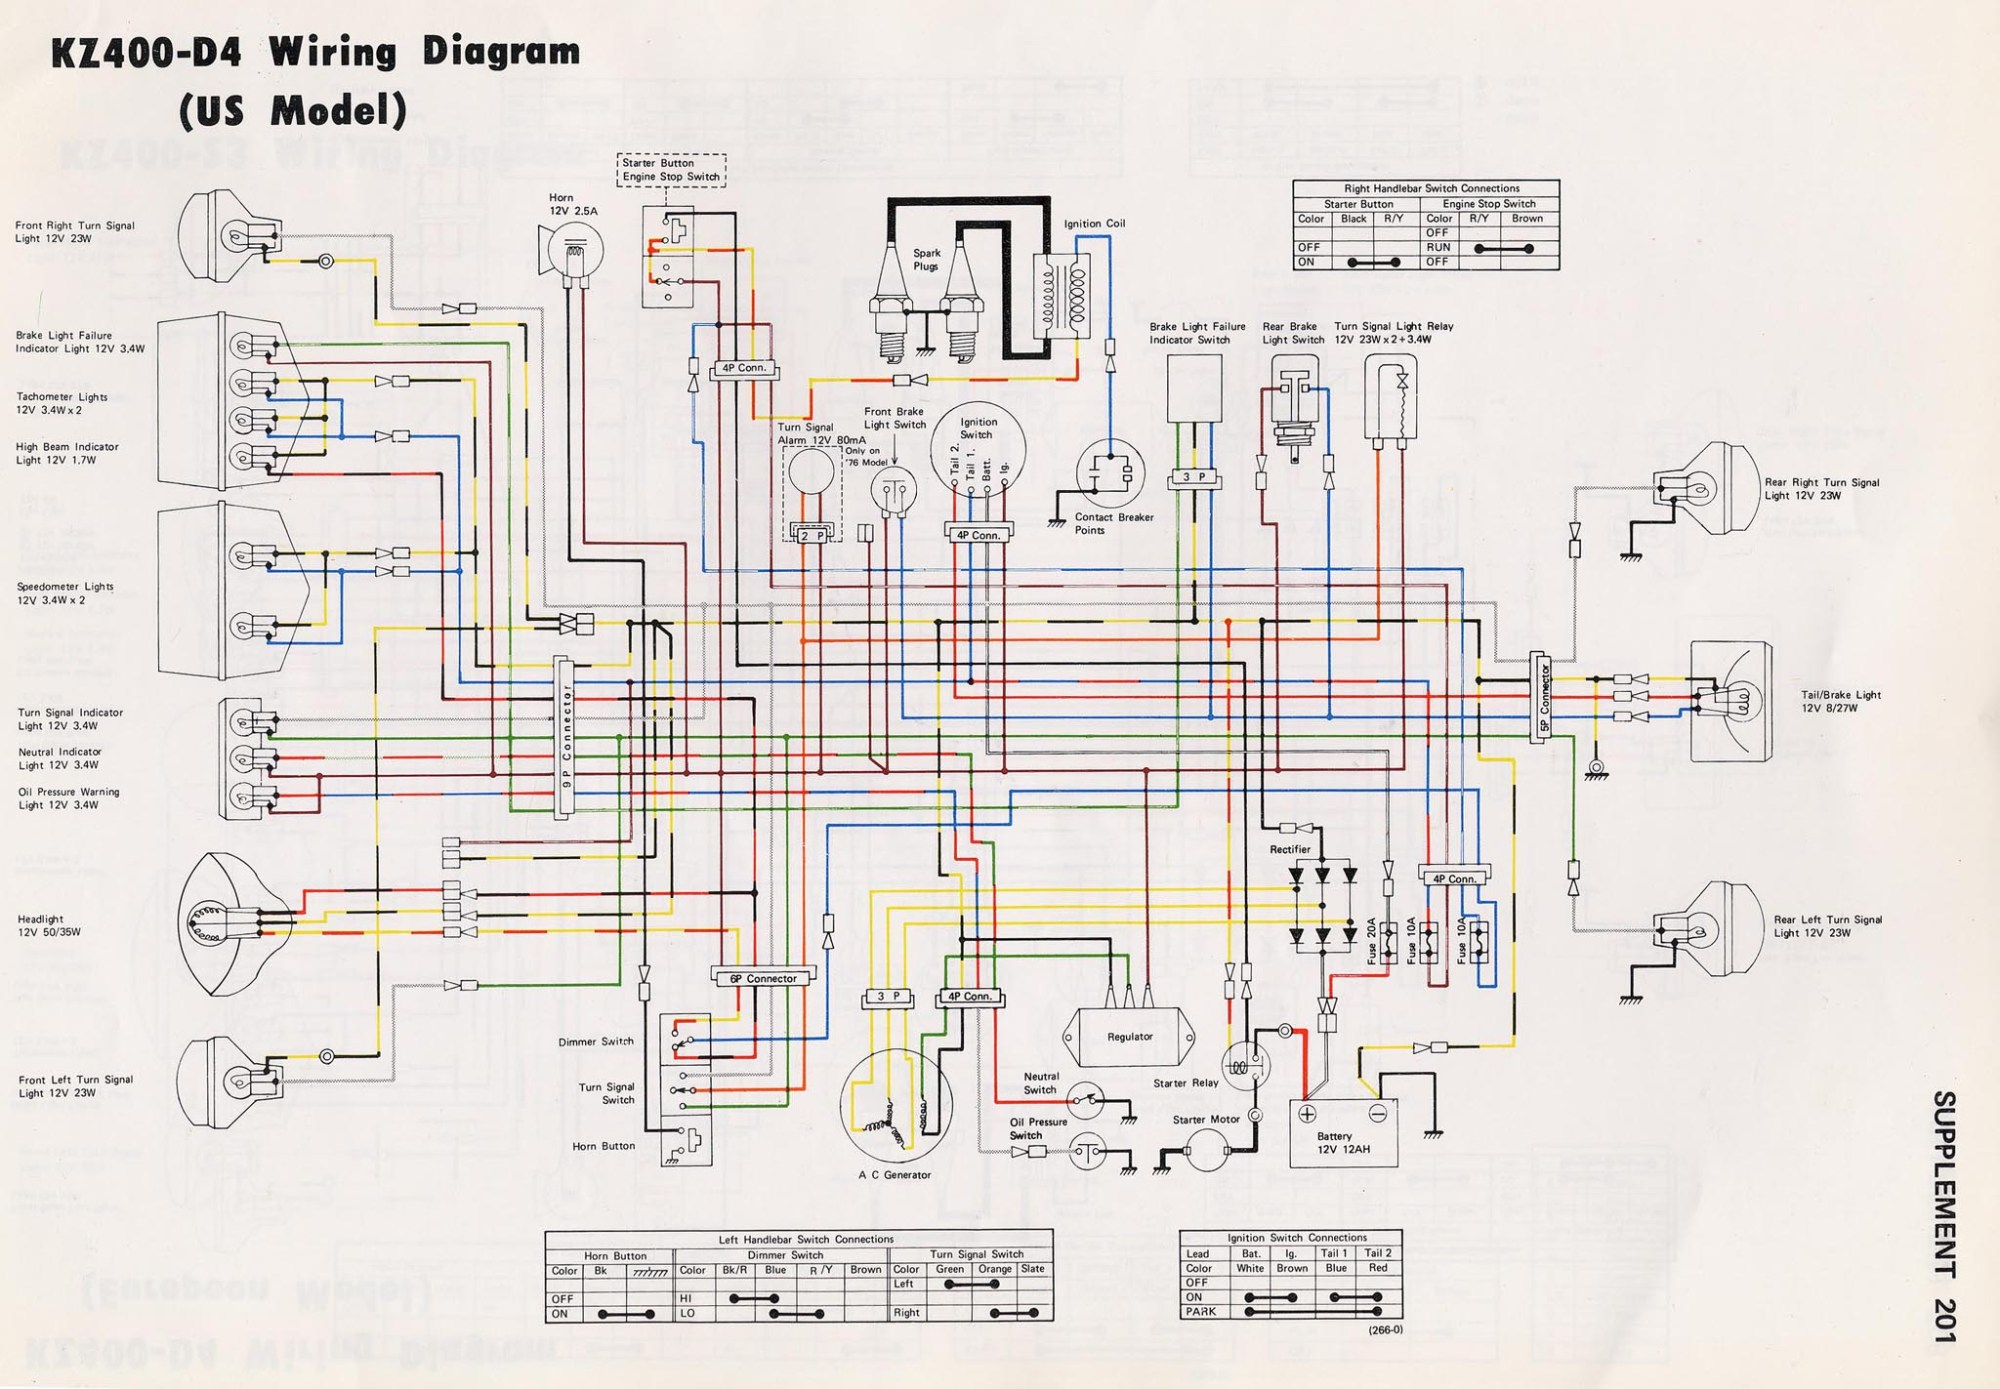 hight resolution of kawasaki 400 wiring diagram wiring diagram pagekawasaki 400 wiring diagram blog wiring diagram kawasaki 400 wiring